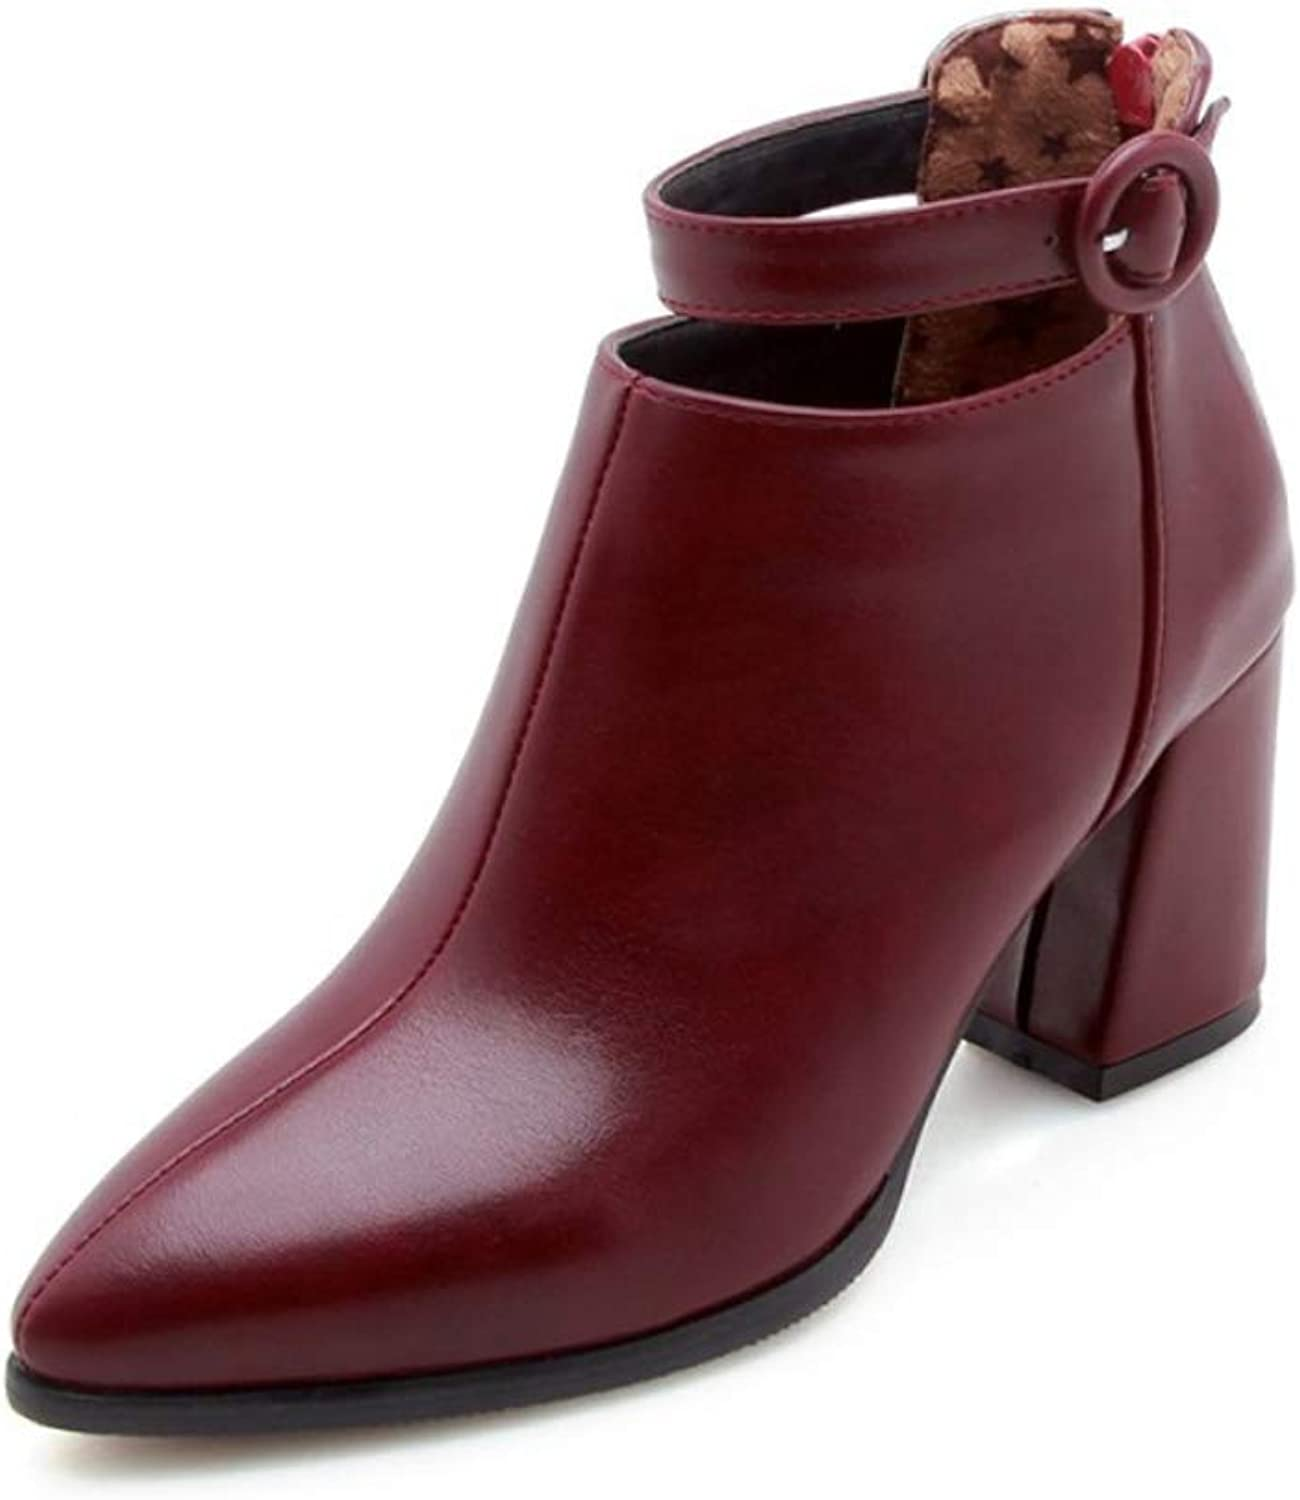 Women's Bootie Ankle Boots British Style Boots Chunky Heel Pointed Toe Booties